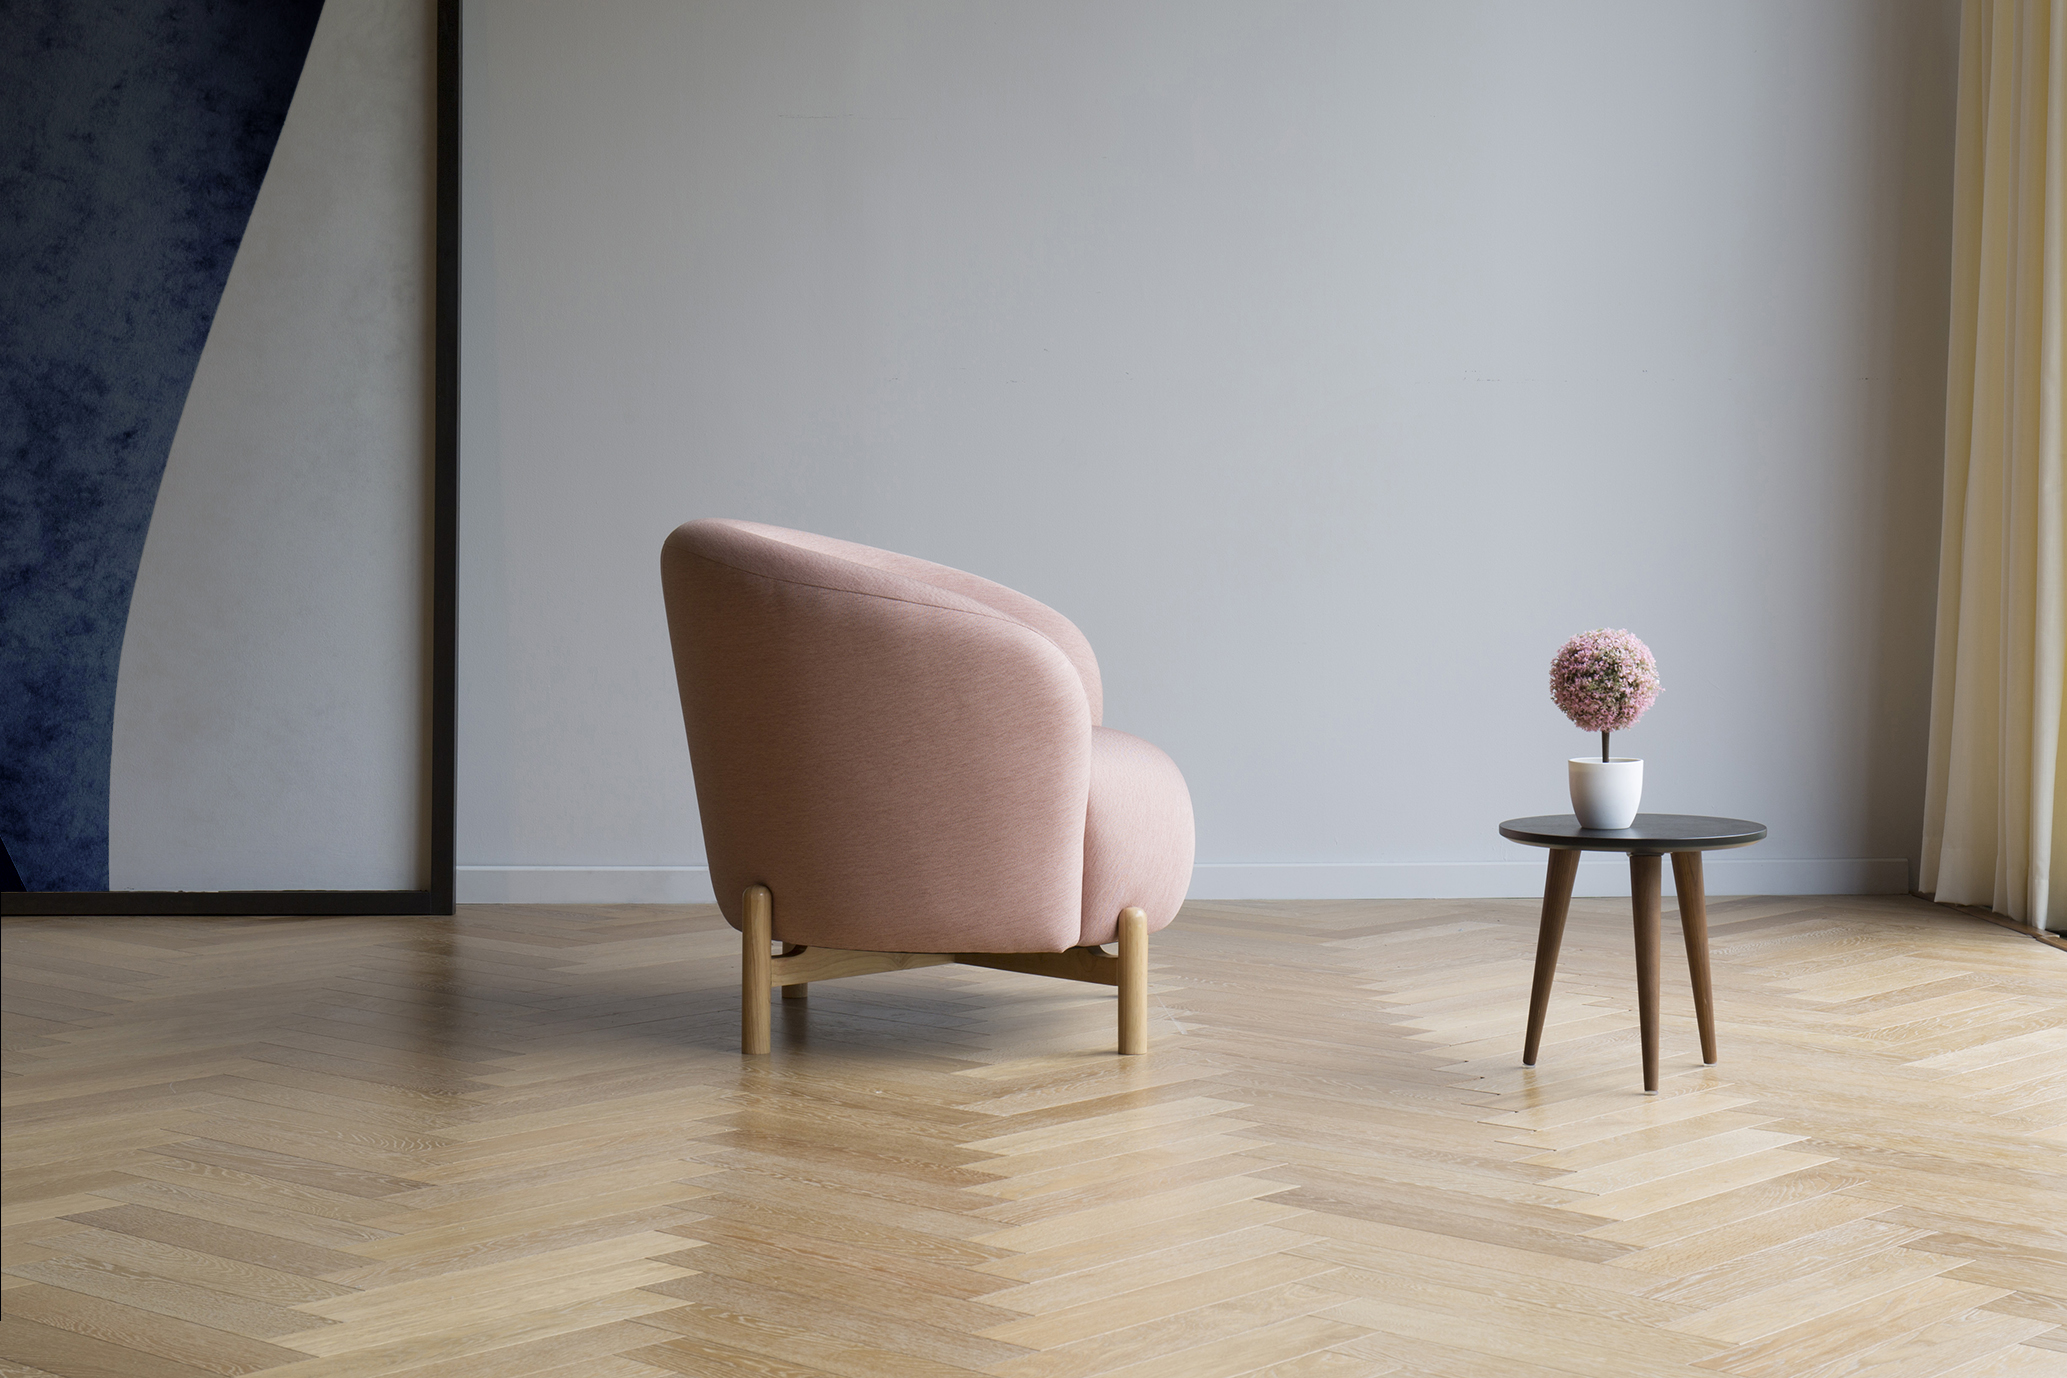 Esby-chair-oliver-lukas-weisskrogh-4.jpg